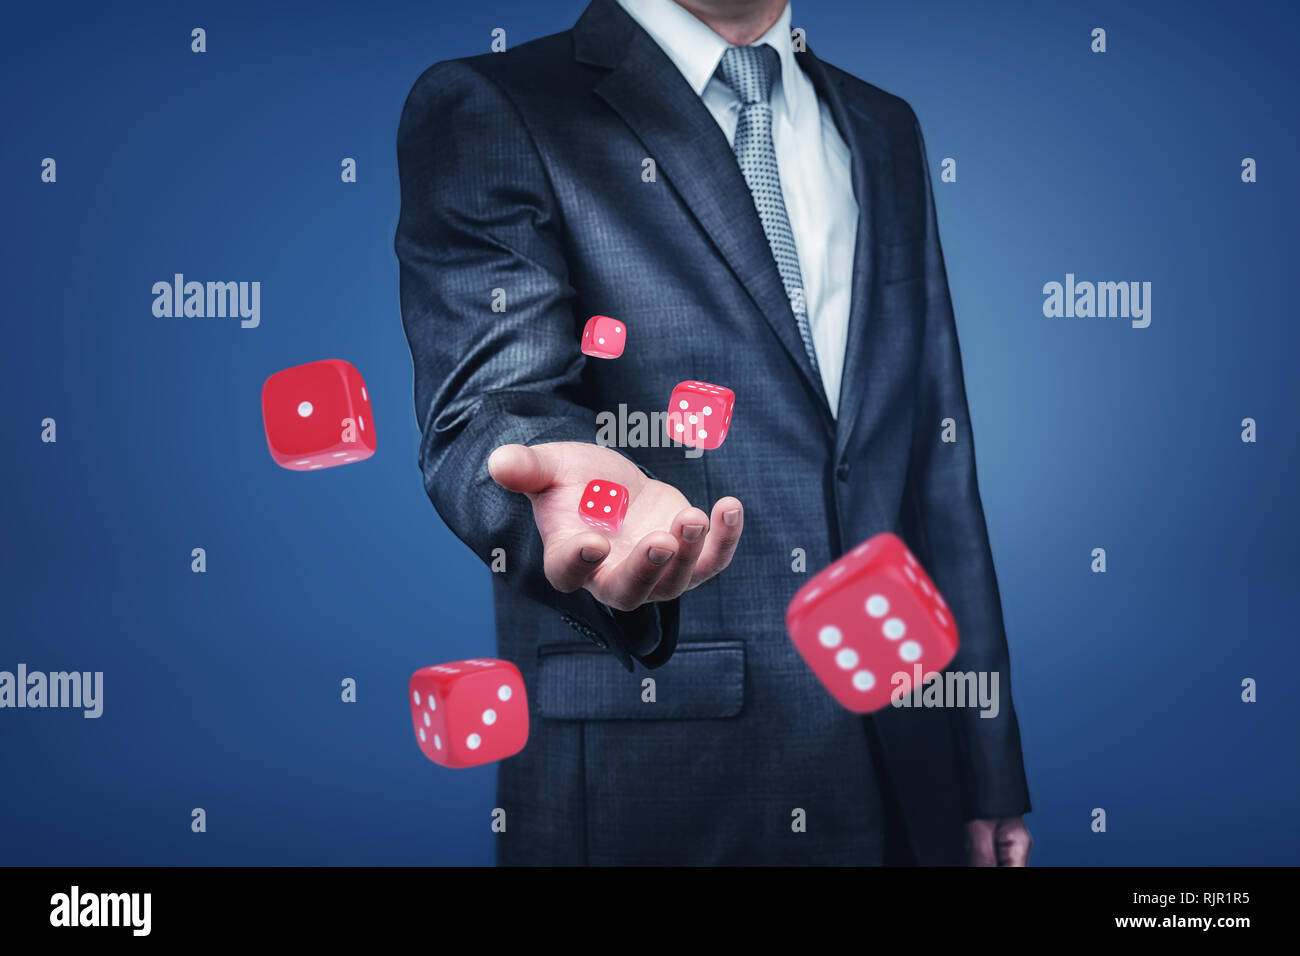 A businessman's arm throwing many red casino dice to the front in a close view. Playing business game. Winning and losing money. Career gambling. Stock Photo